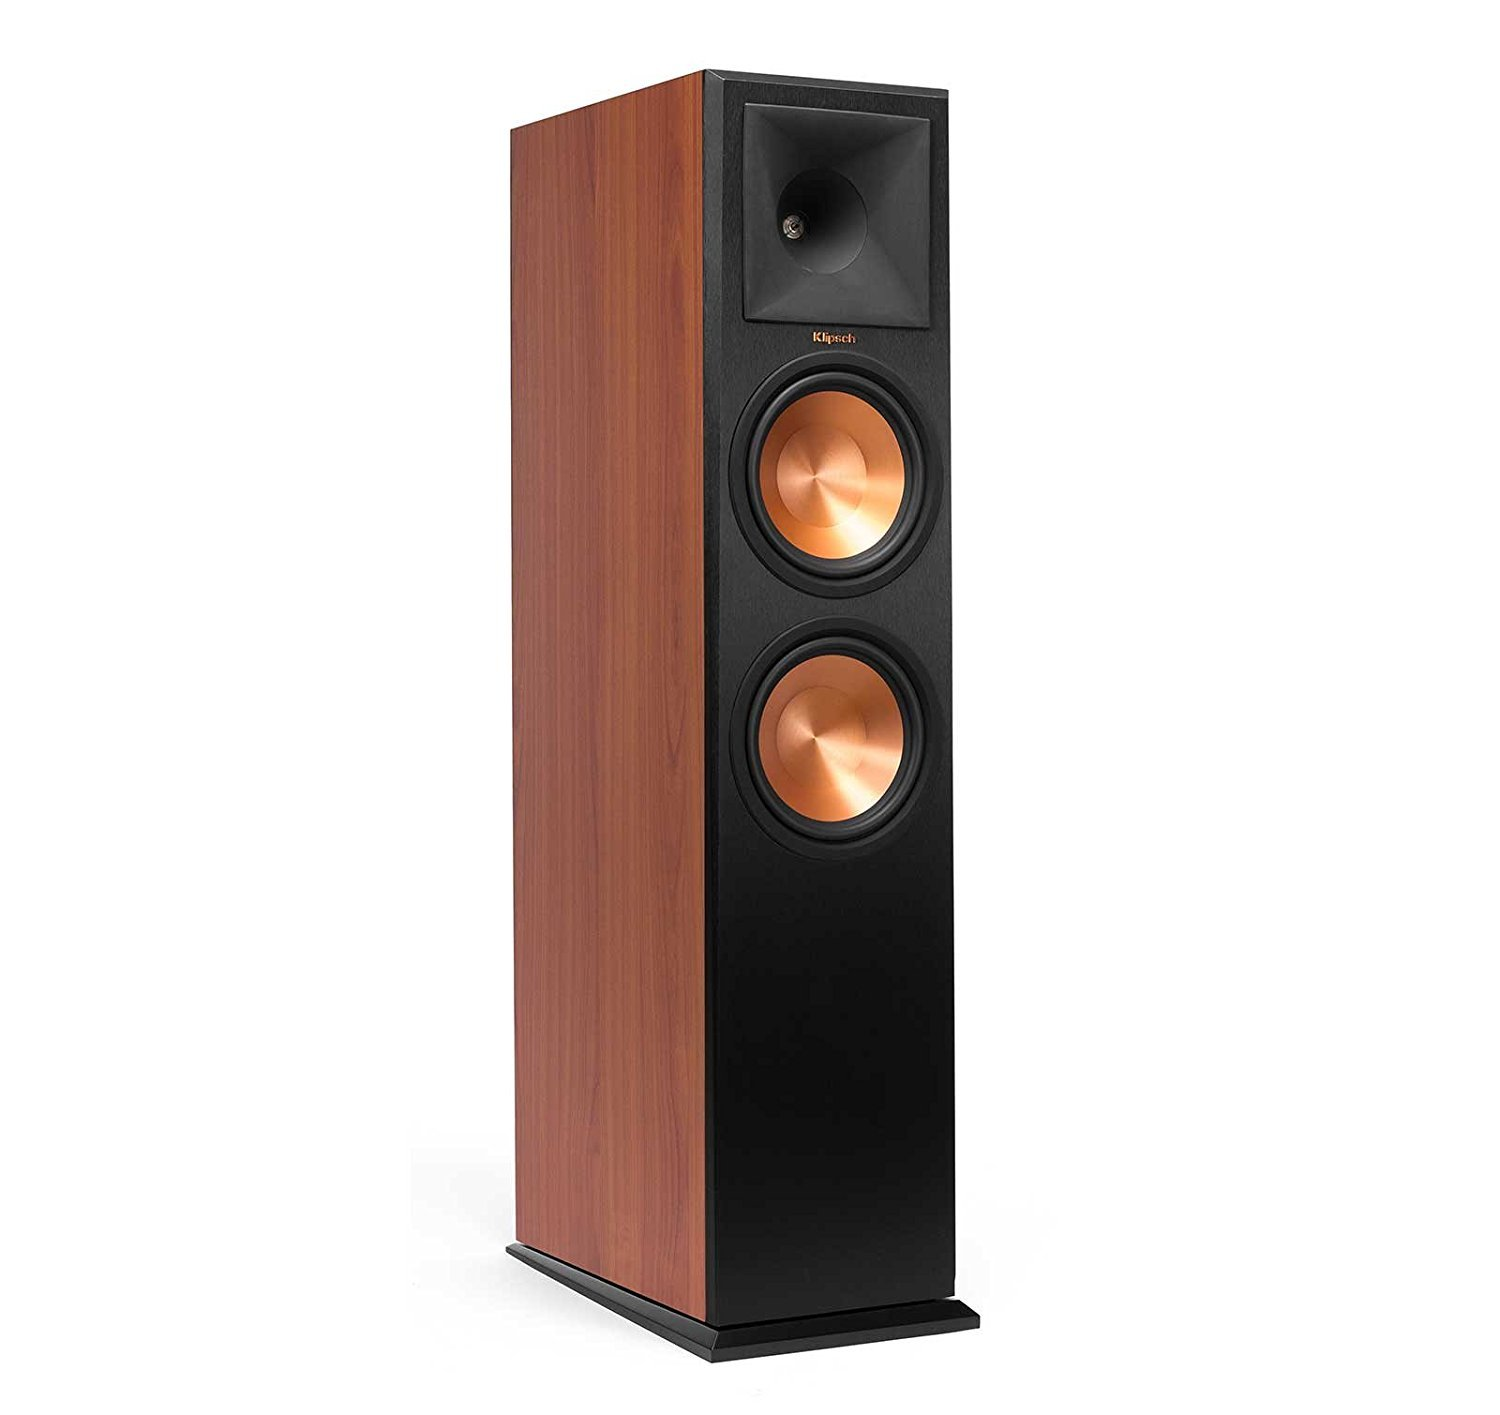 Klipsch RP-280FA Floorstanding Speaker with Built-In Dolby Atmos Height Channel - Each (Cherry Vinyl)